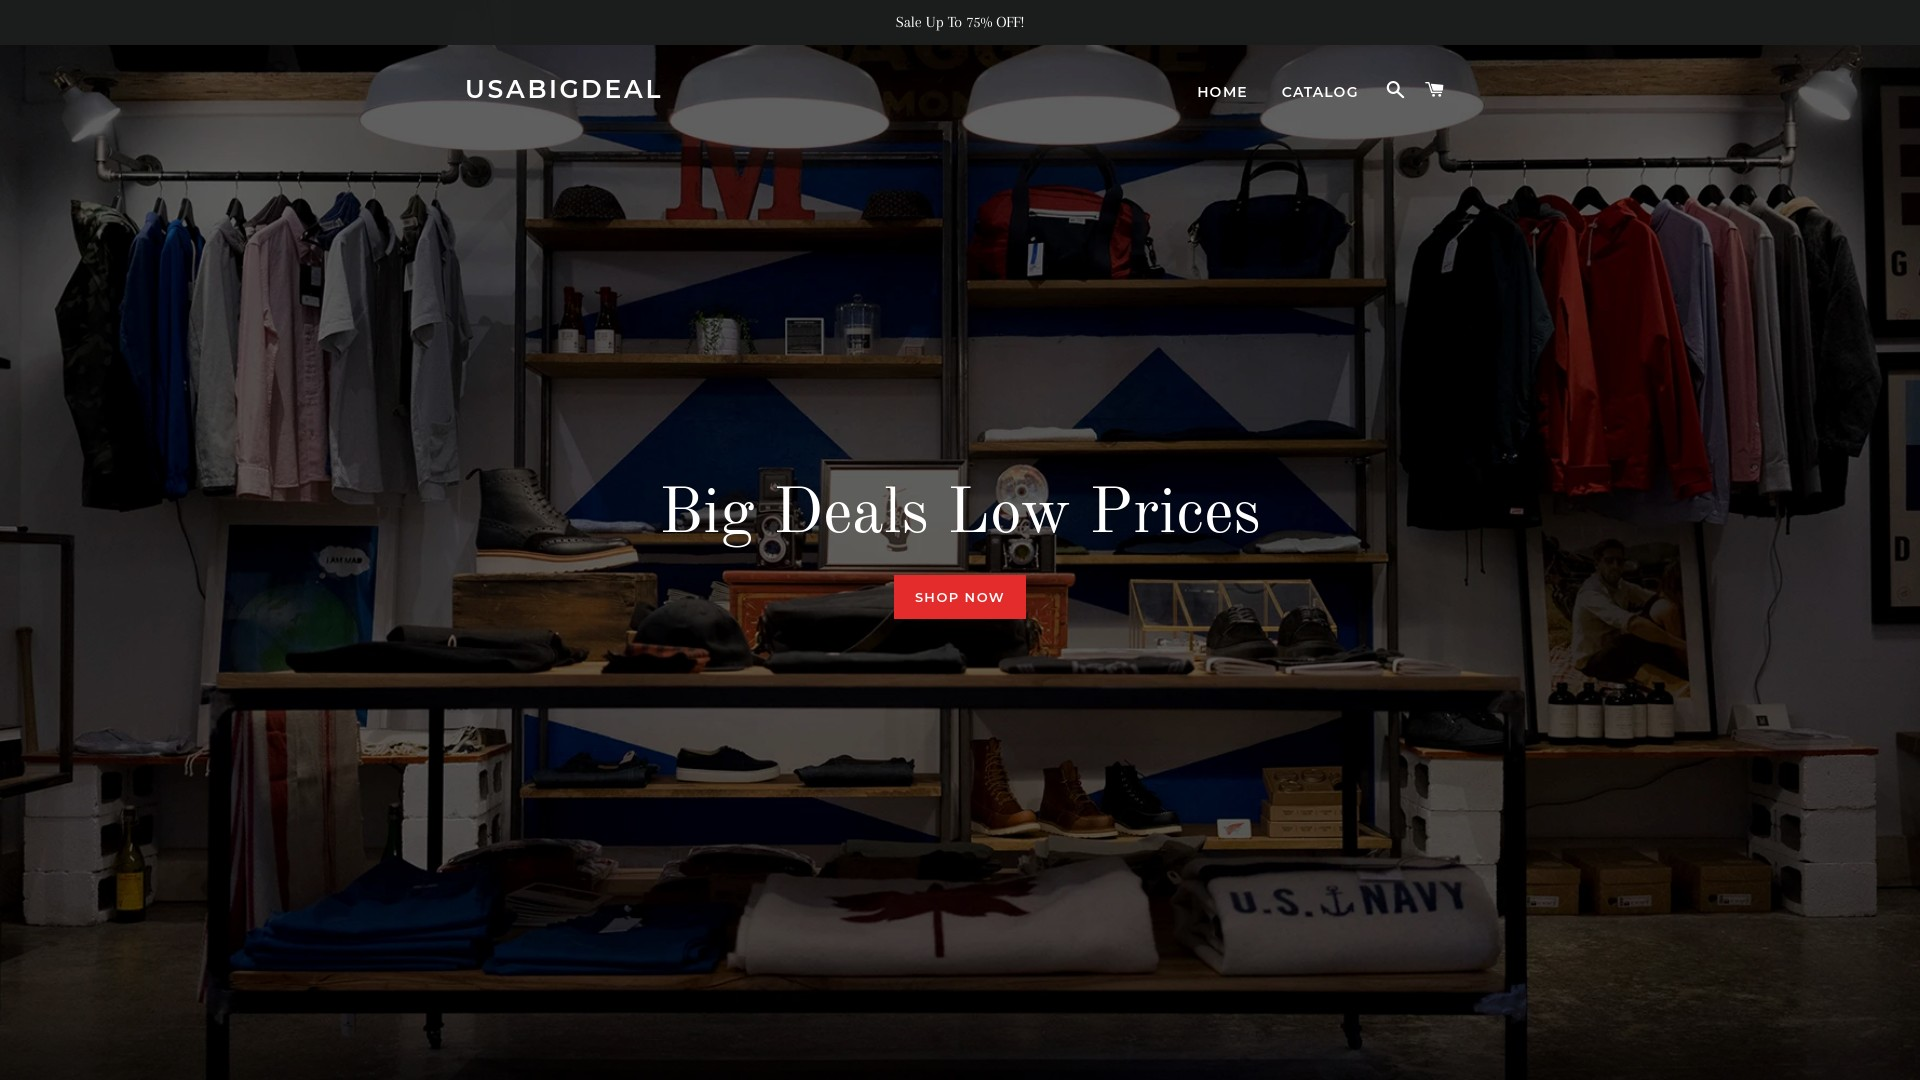 Is Usabigdeal a Scam? Review of the Online Store